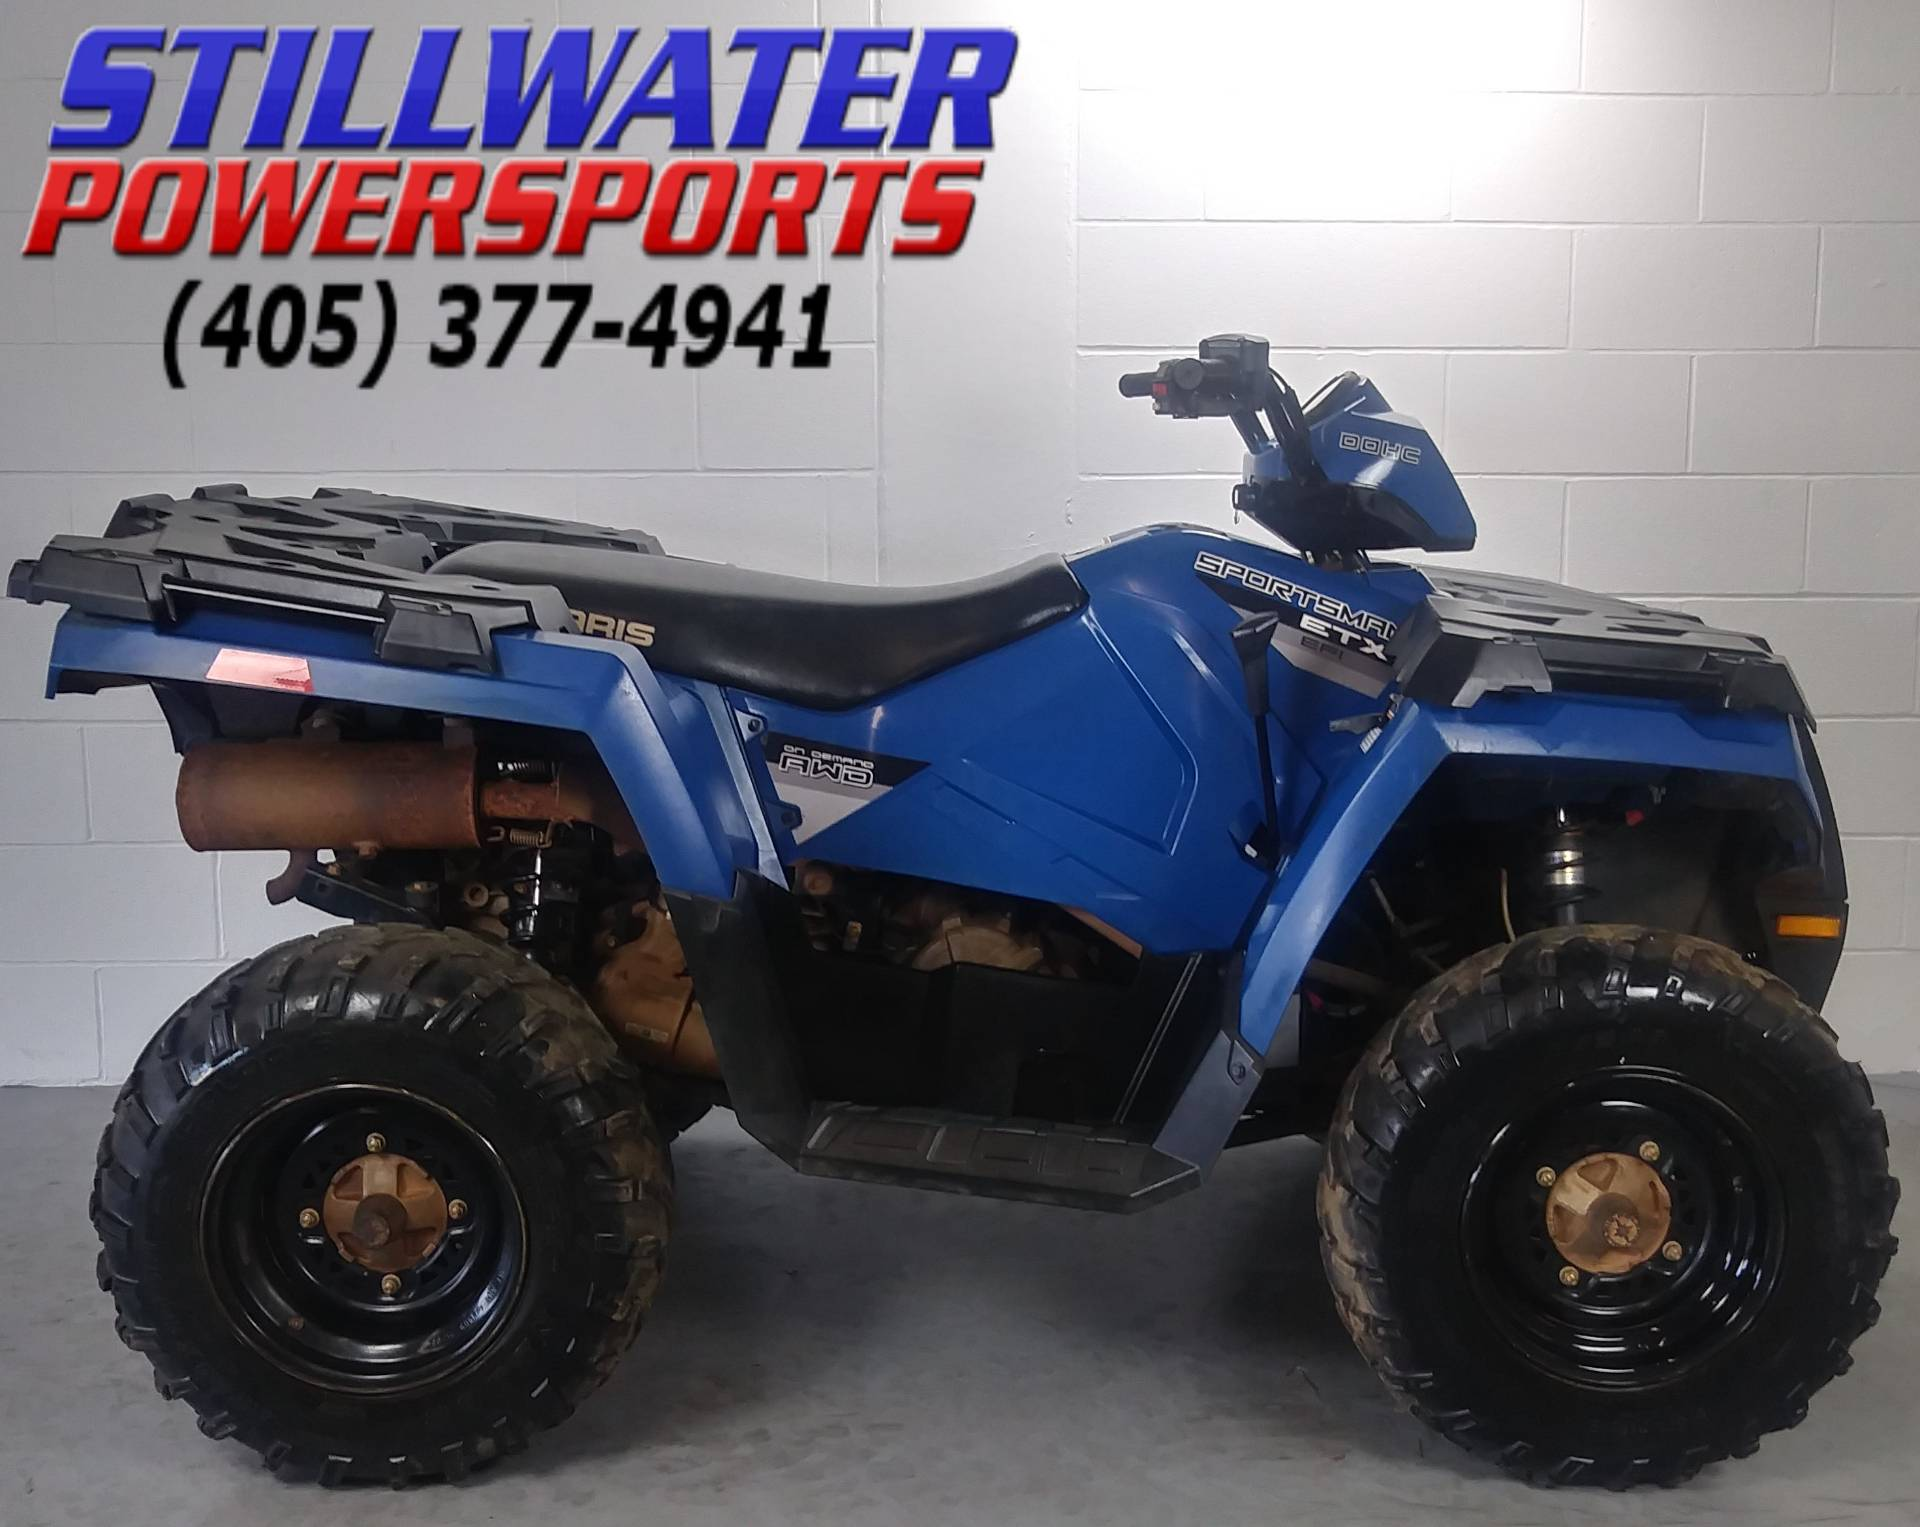 2015 Polaris Sportsman in Stillwater, Oklahoma